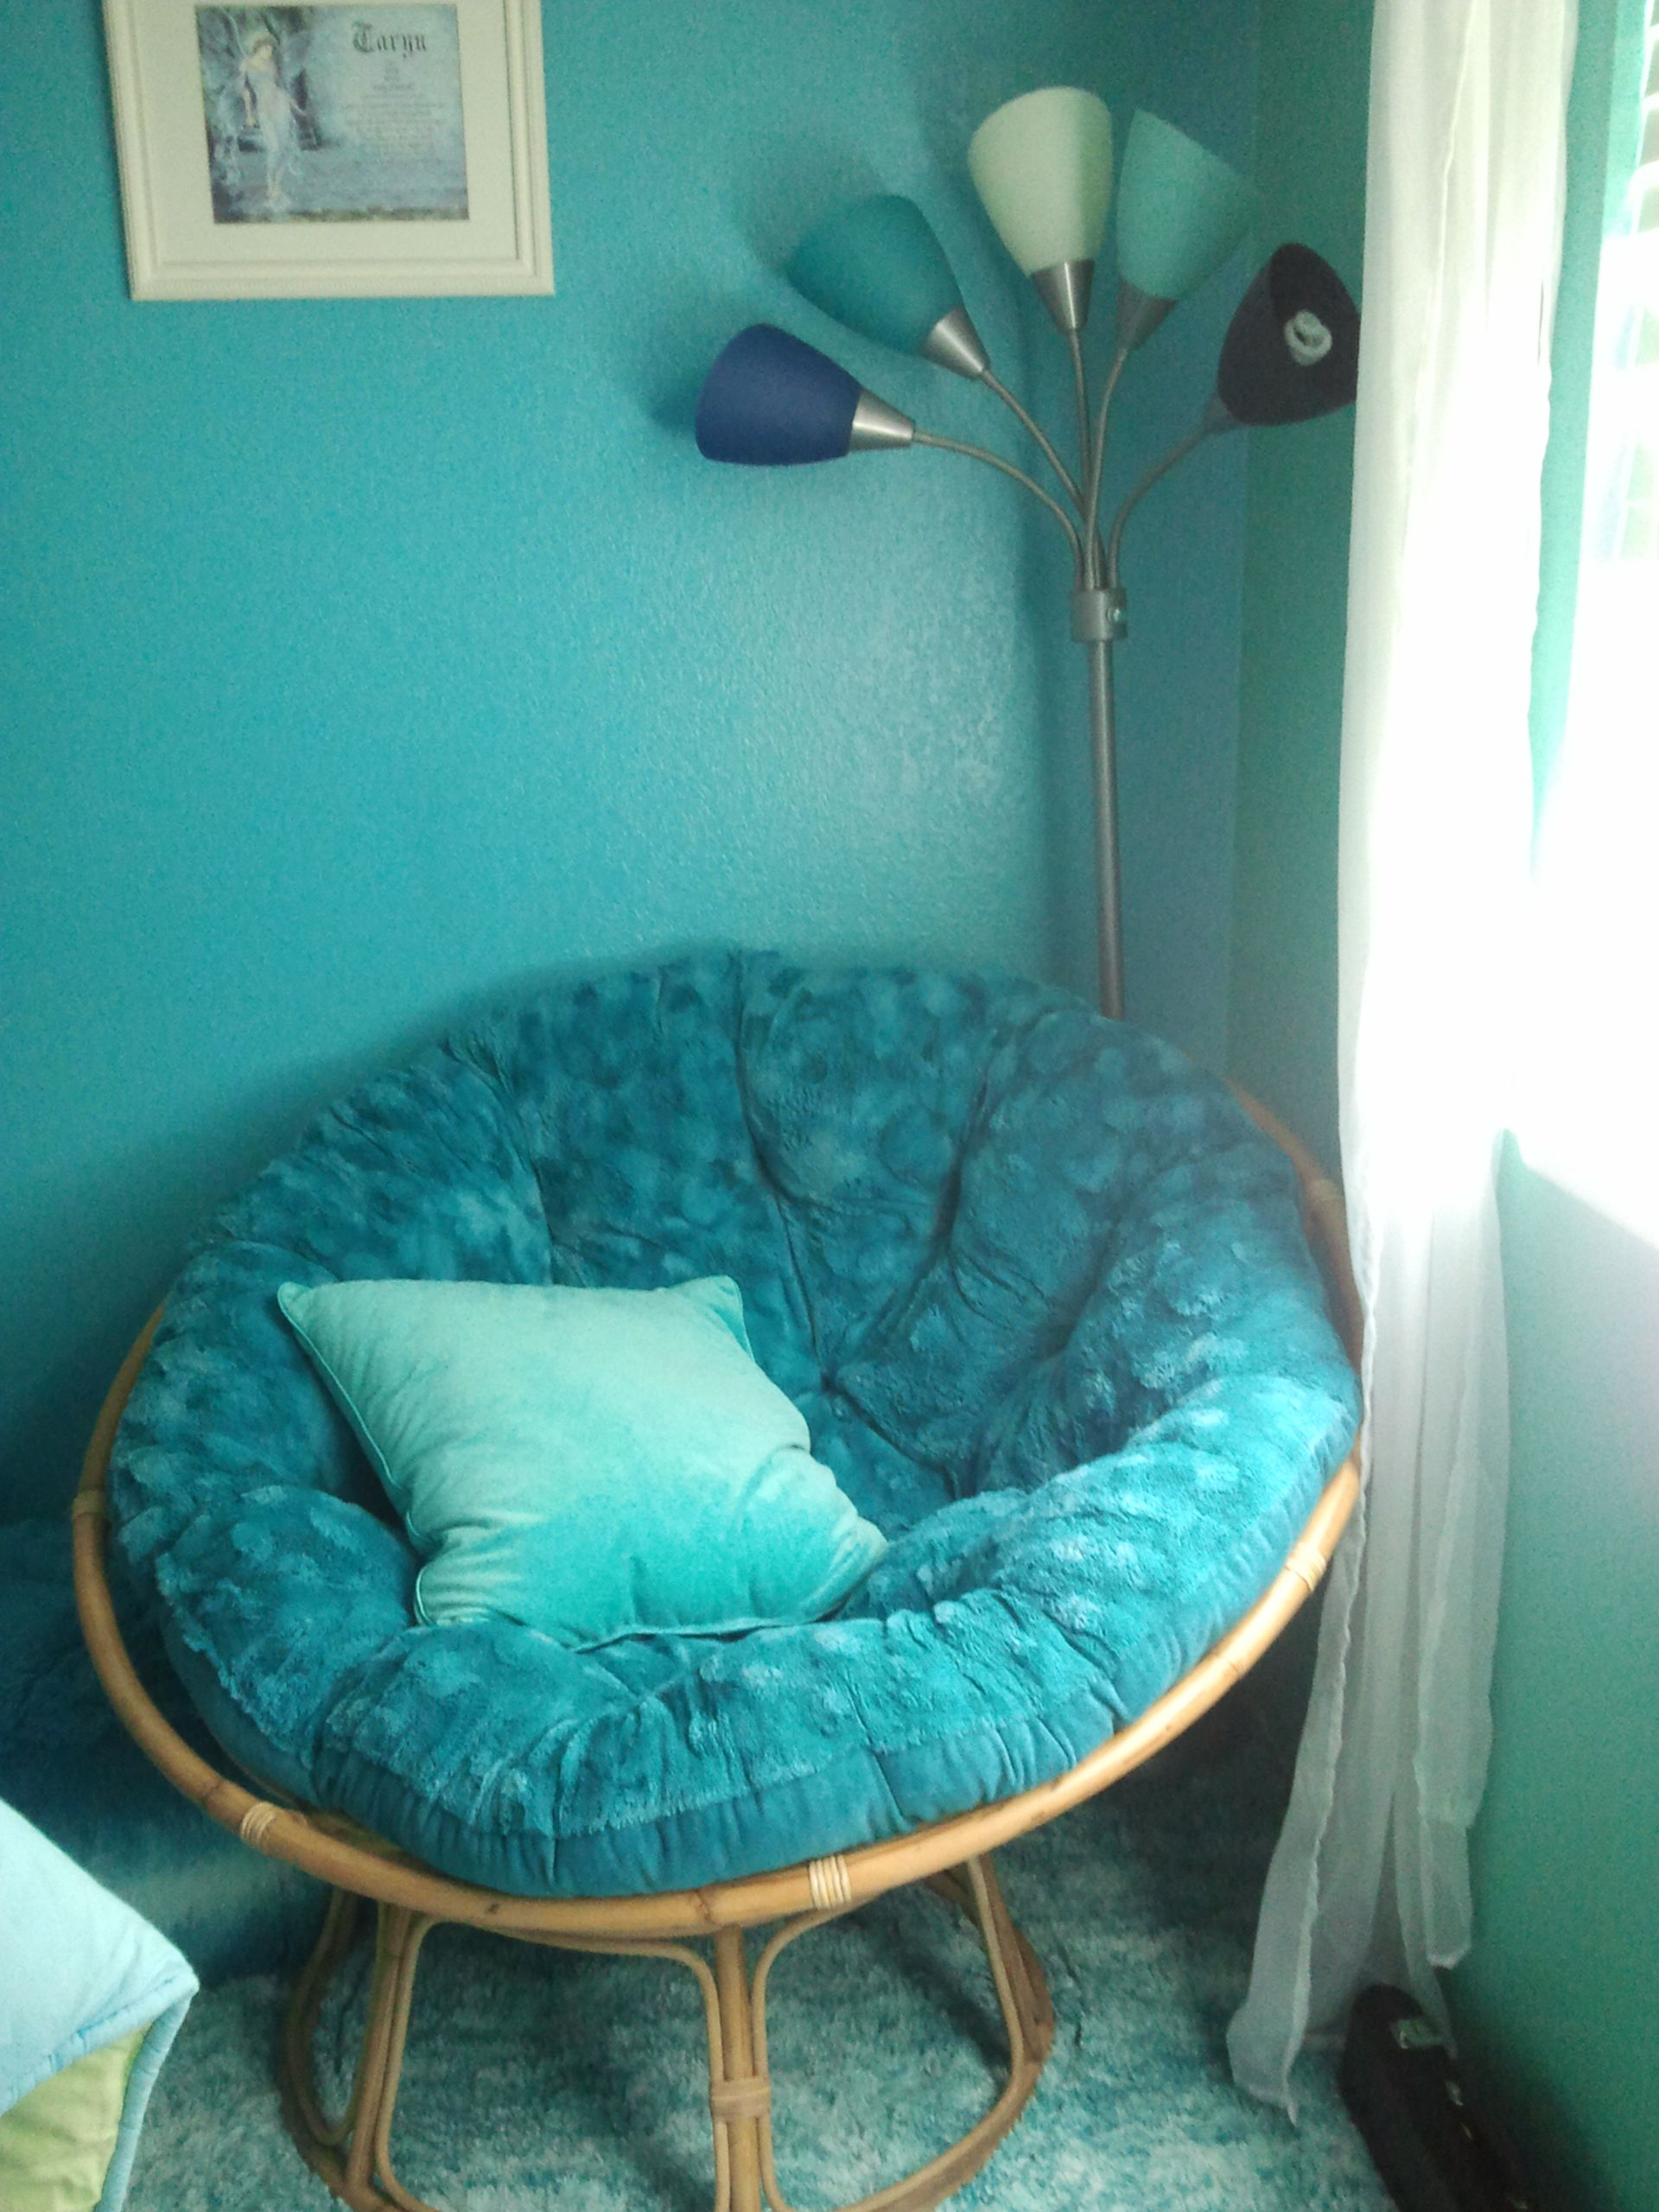 Delicieux Papasan Chair And $20 Lamp From Target. The Lamp Is Flexible So We Posed It